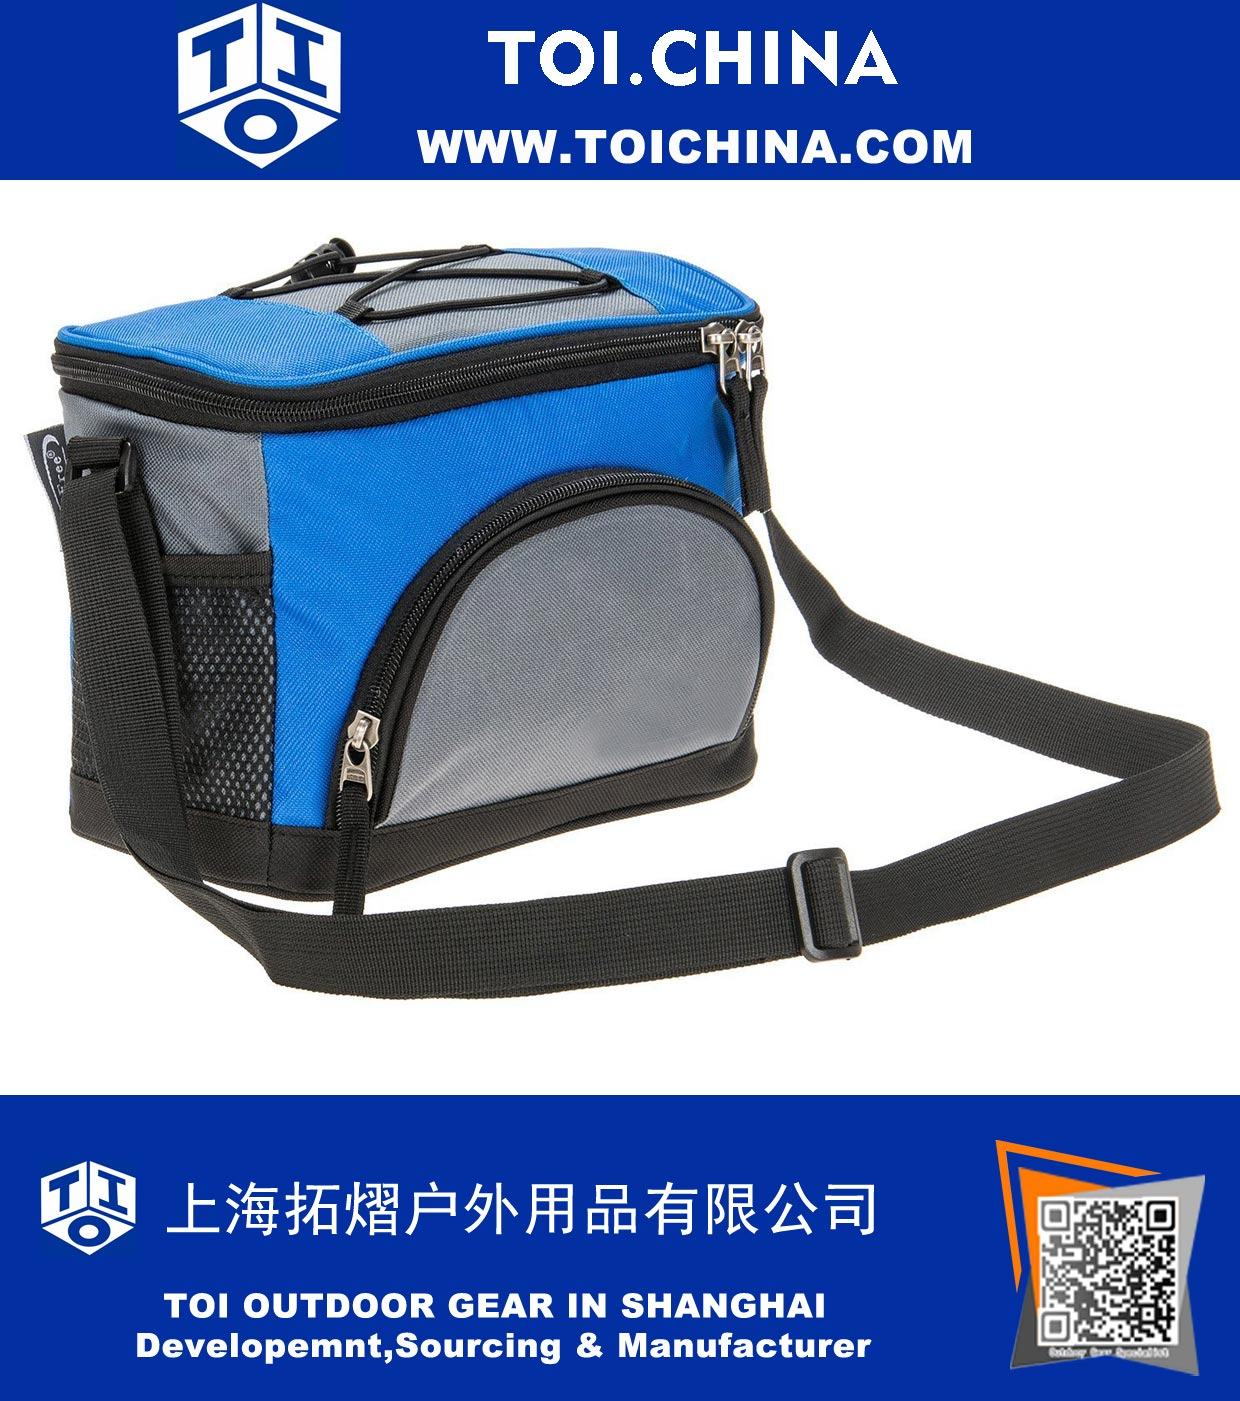 e2298dbcc087 5-6 Can Soft Cooler Lunch Bag for Camping Family Picnics Outdoor Activities School  Kids